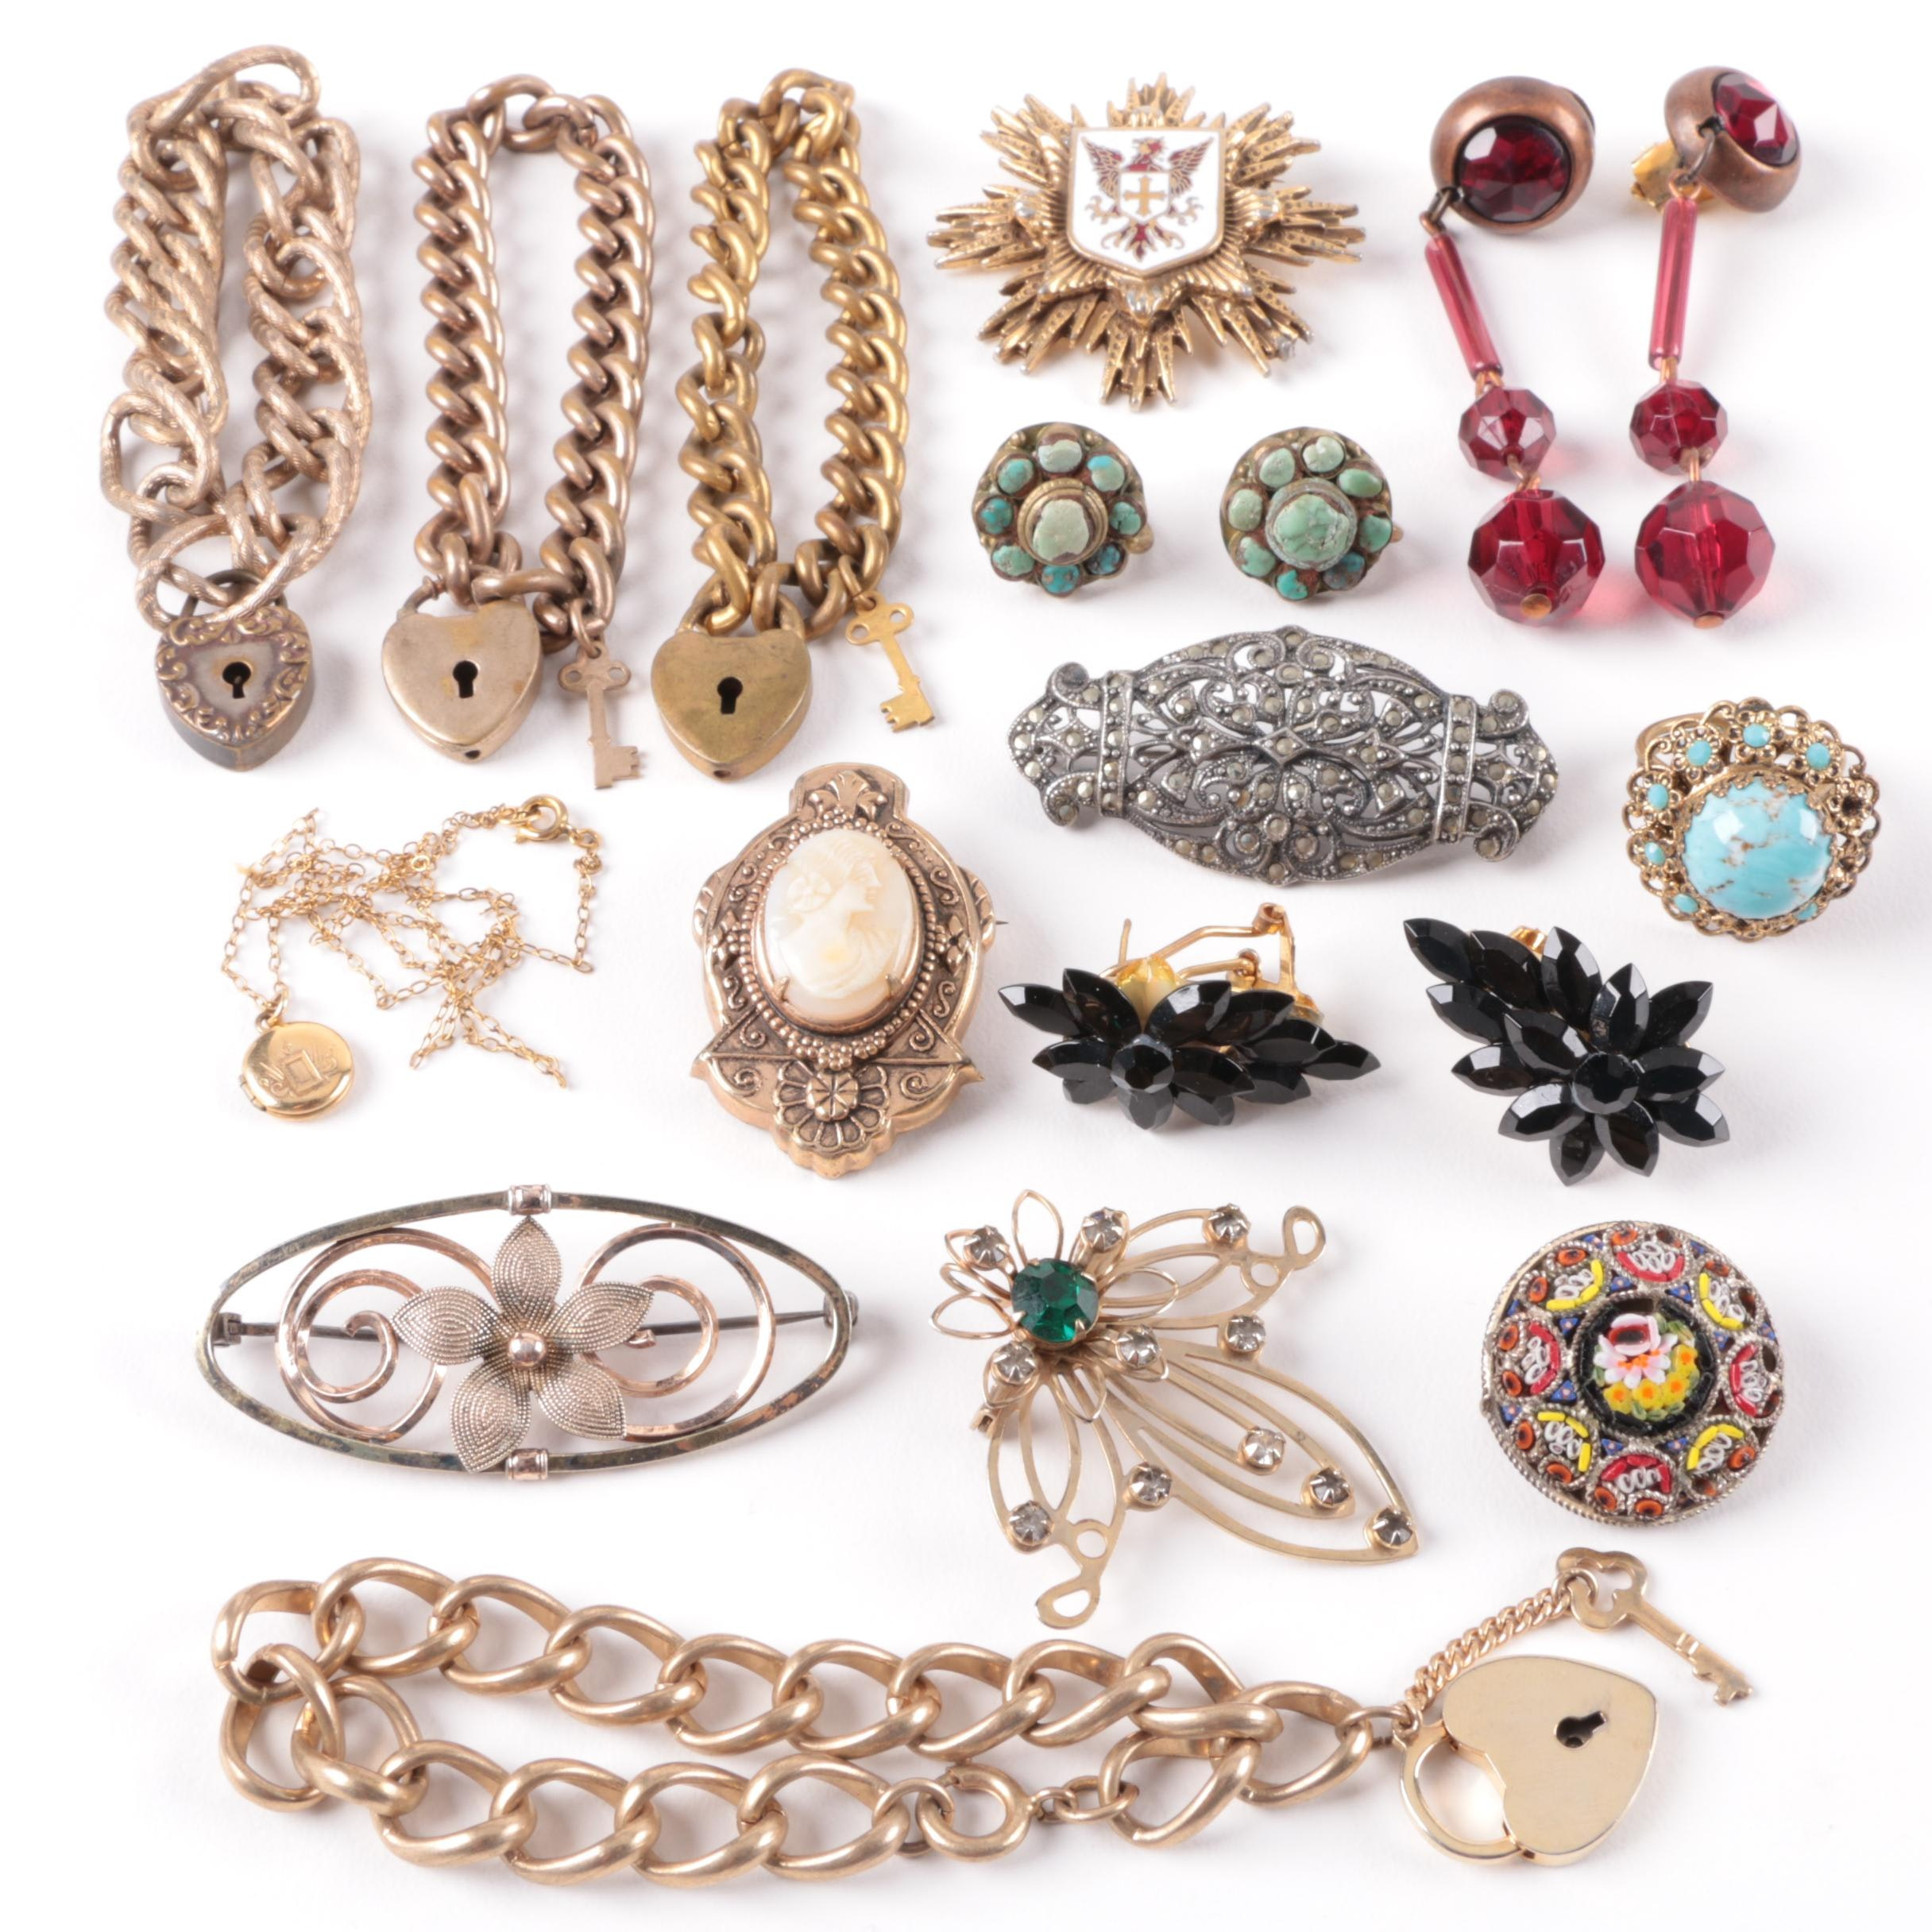 Selection of Vintage Costume and Gemstone Jewelry